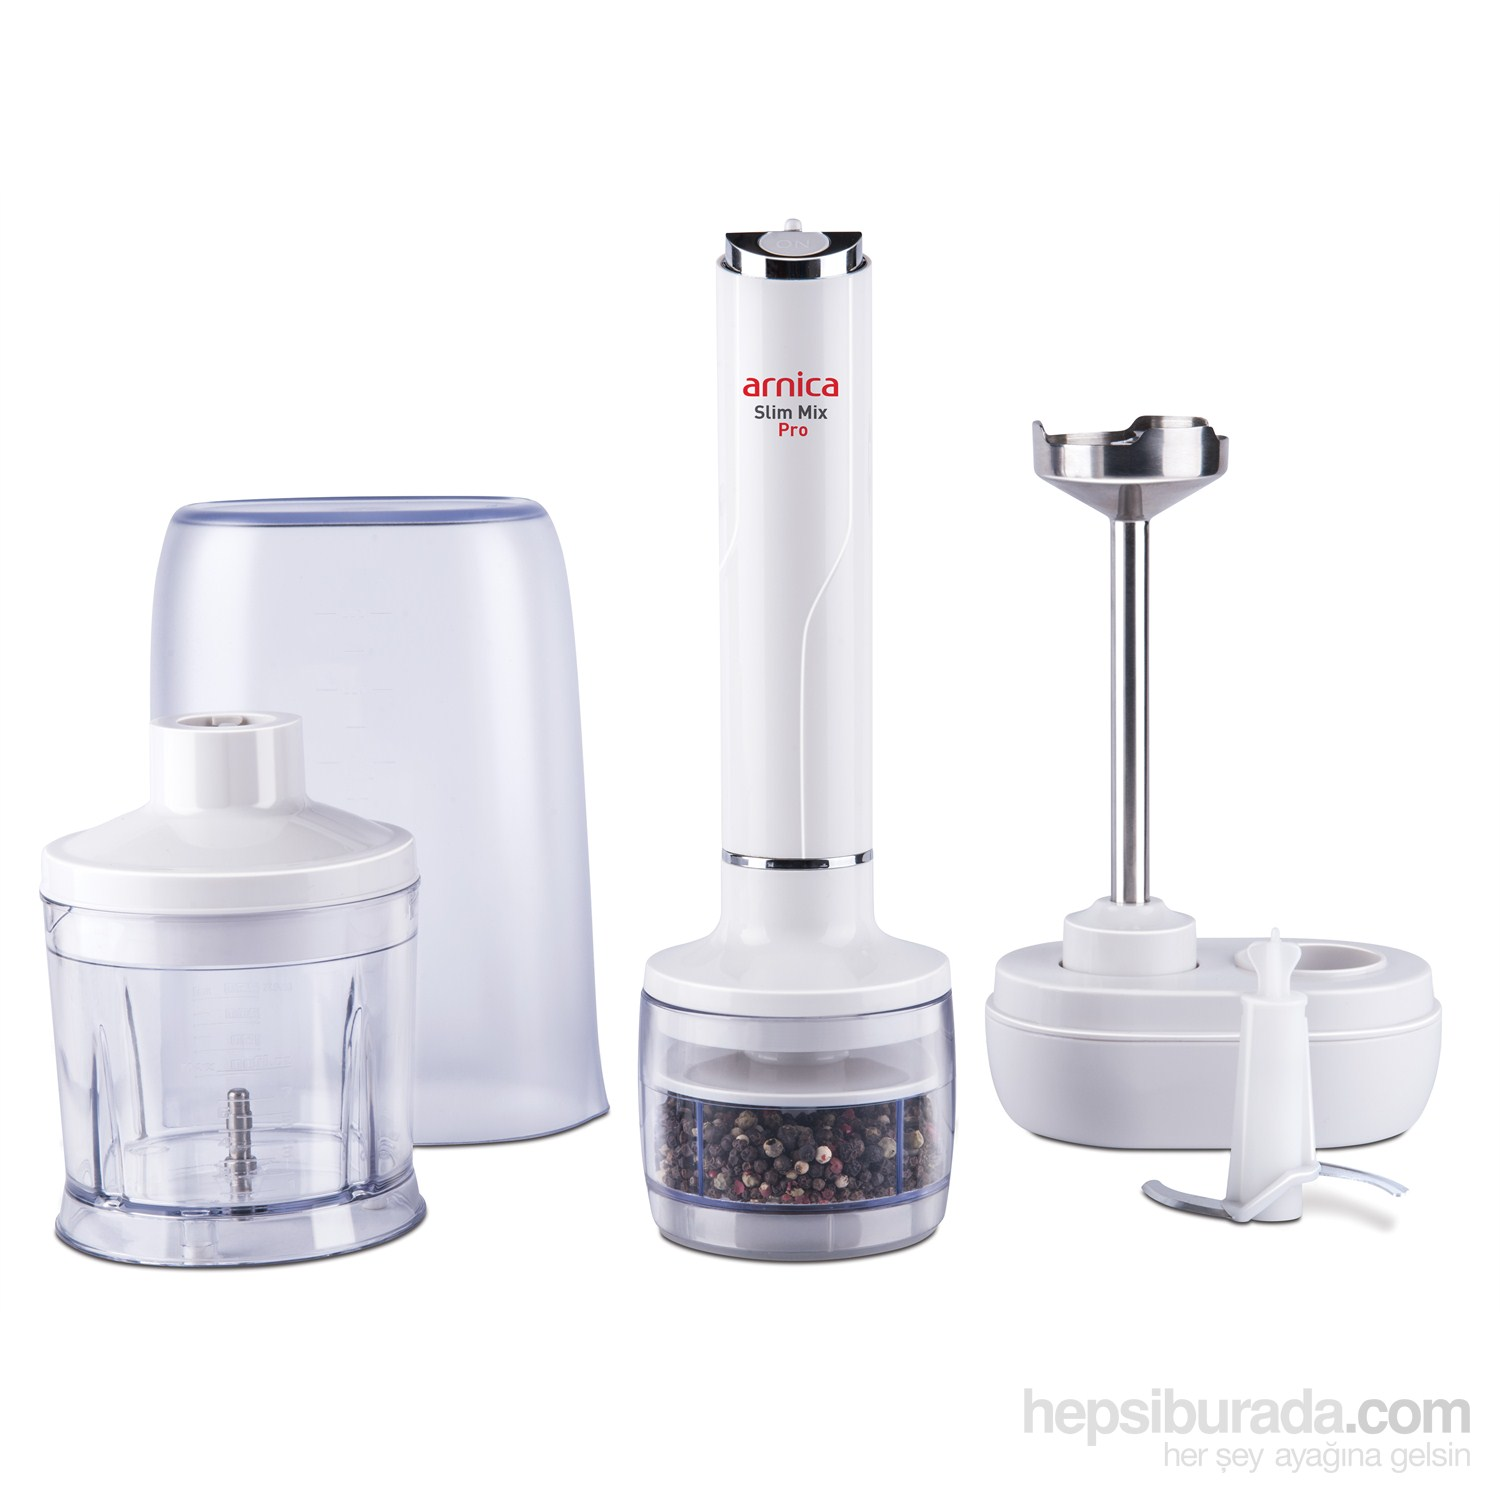 Arnica Slim Mix Pro El Blender Seti